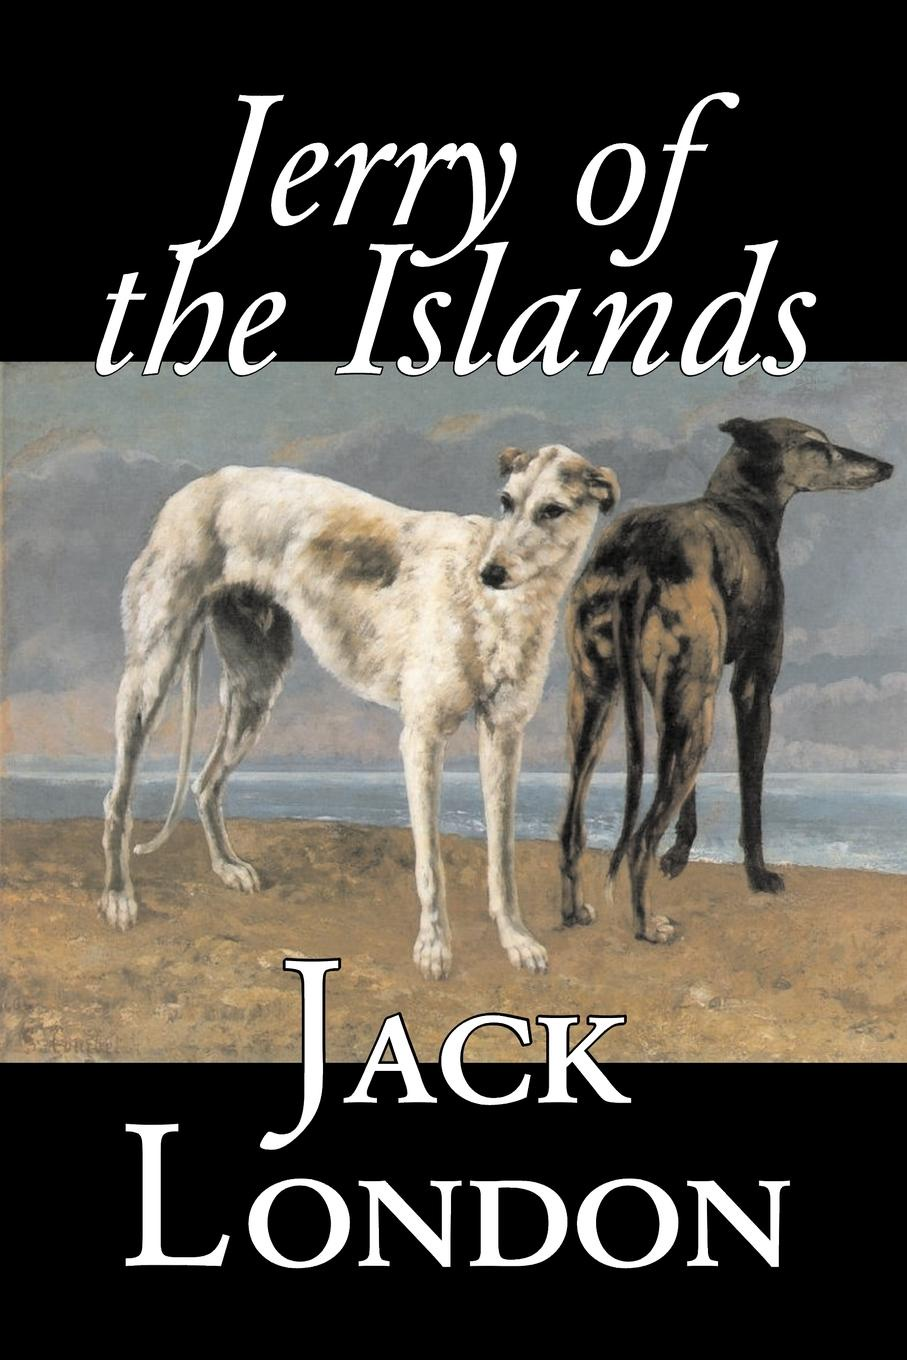 Jack London Jerry of the Islands by Jack London, Fiction, Action & Adventure джек лондон jerry of the islands